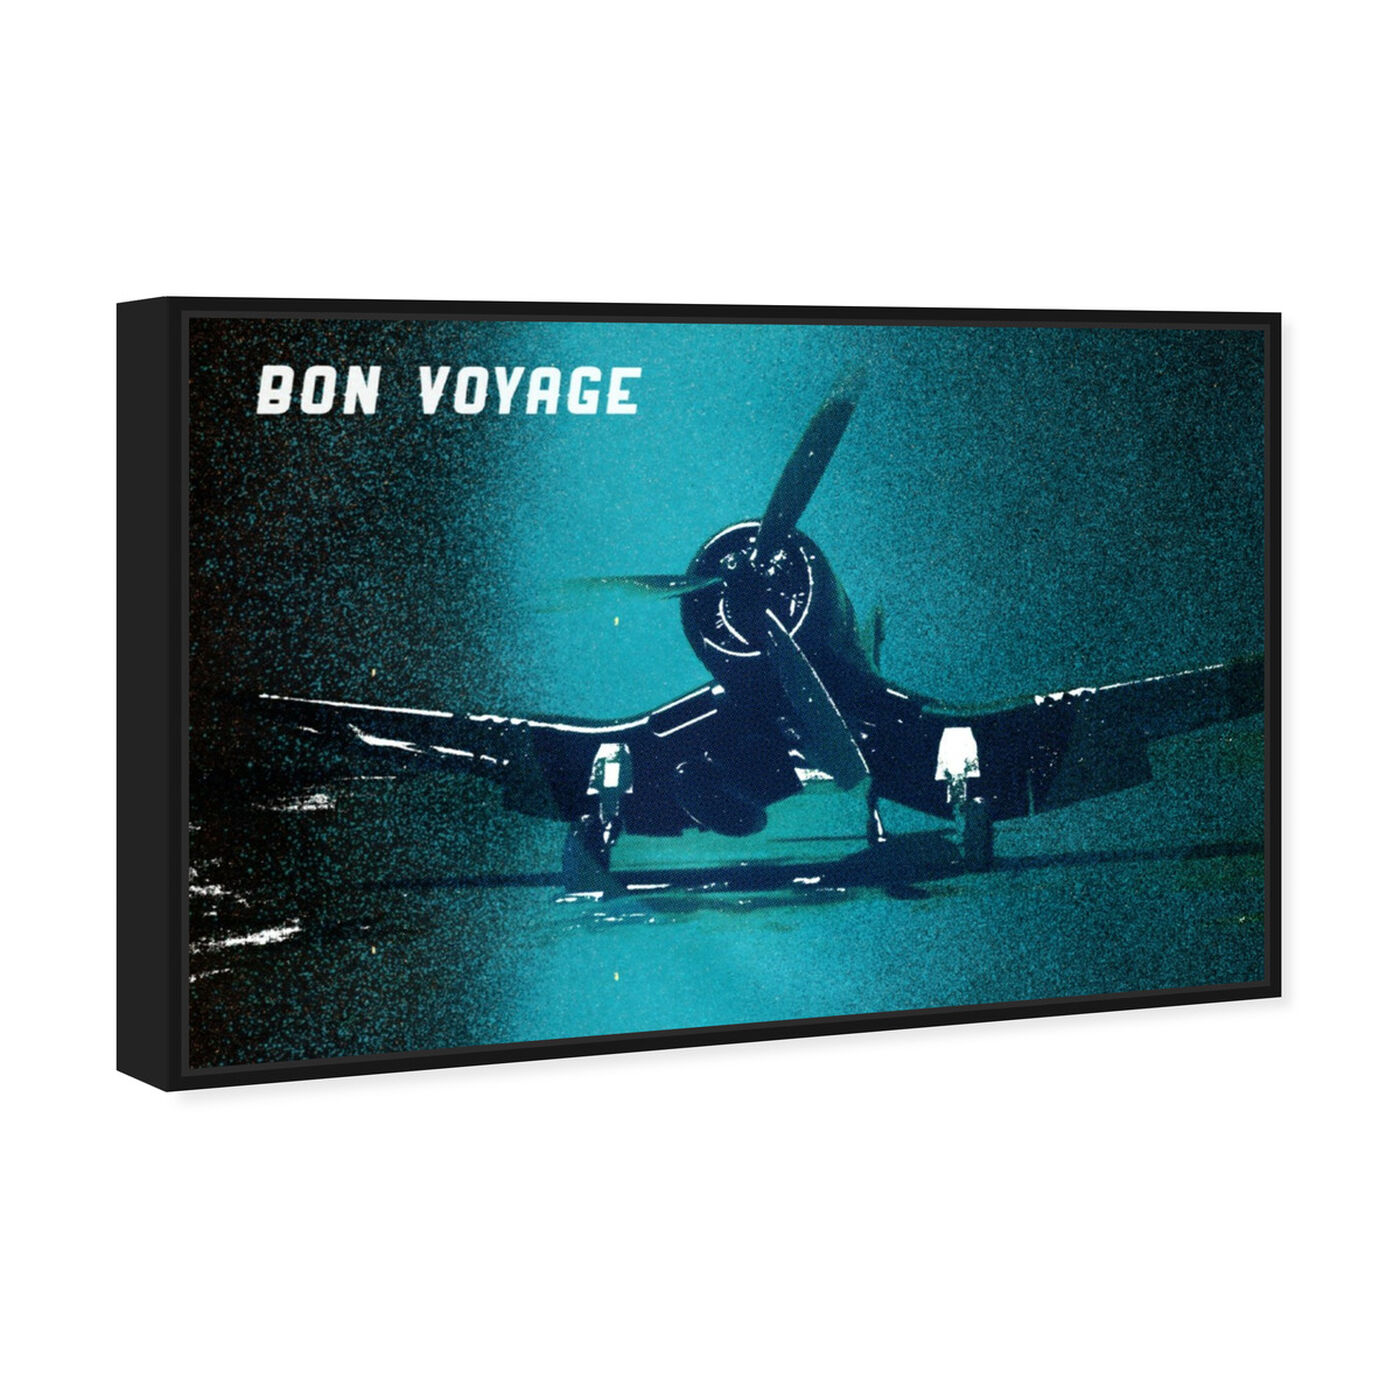 Angled view of Bon Voyage featuring transportation and airplanes art.